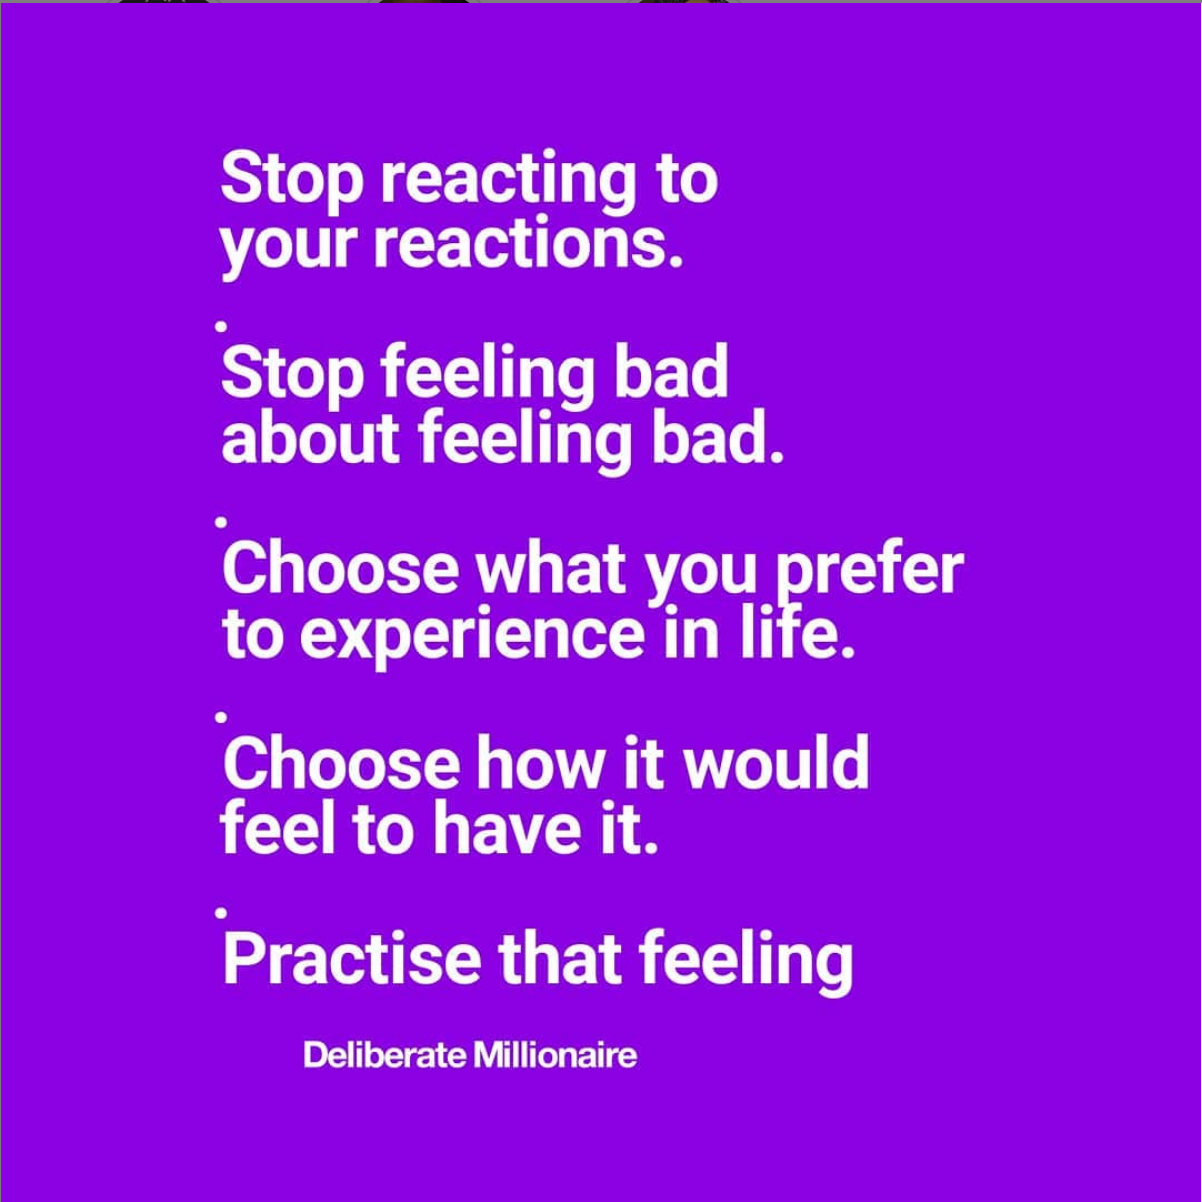 Stop reacting to your reactions